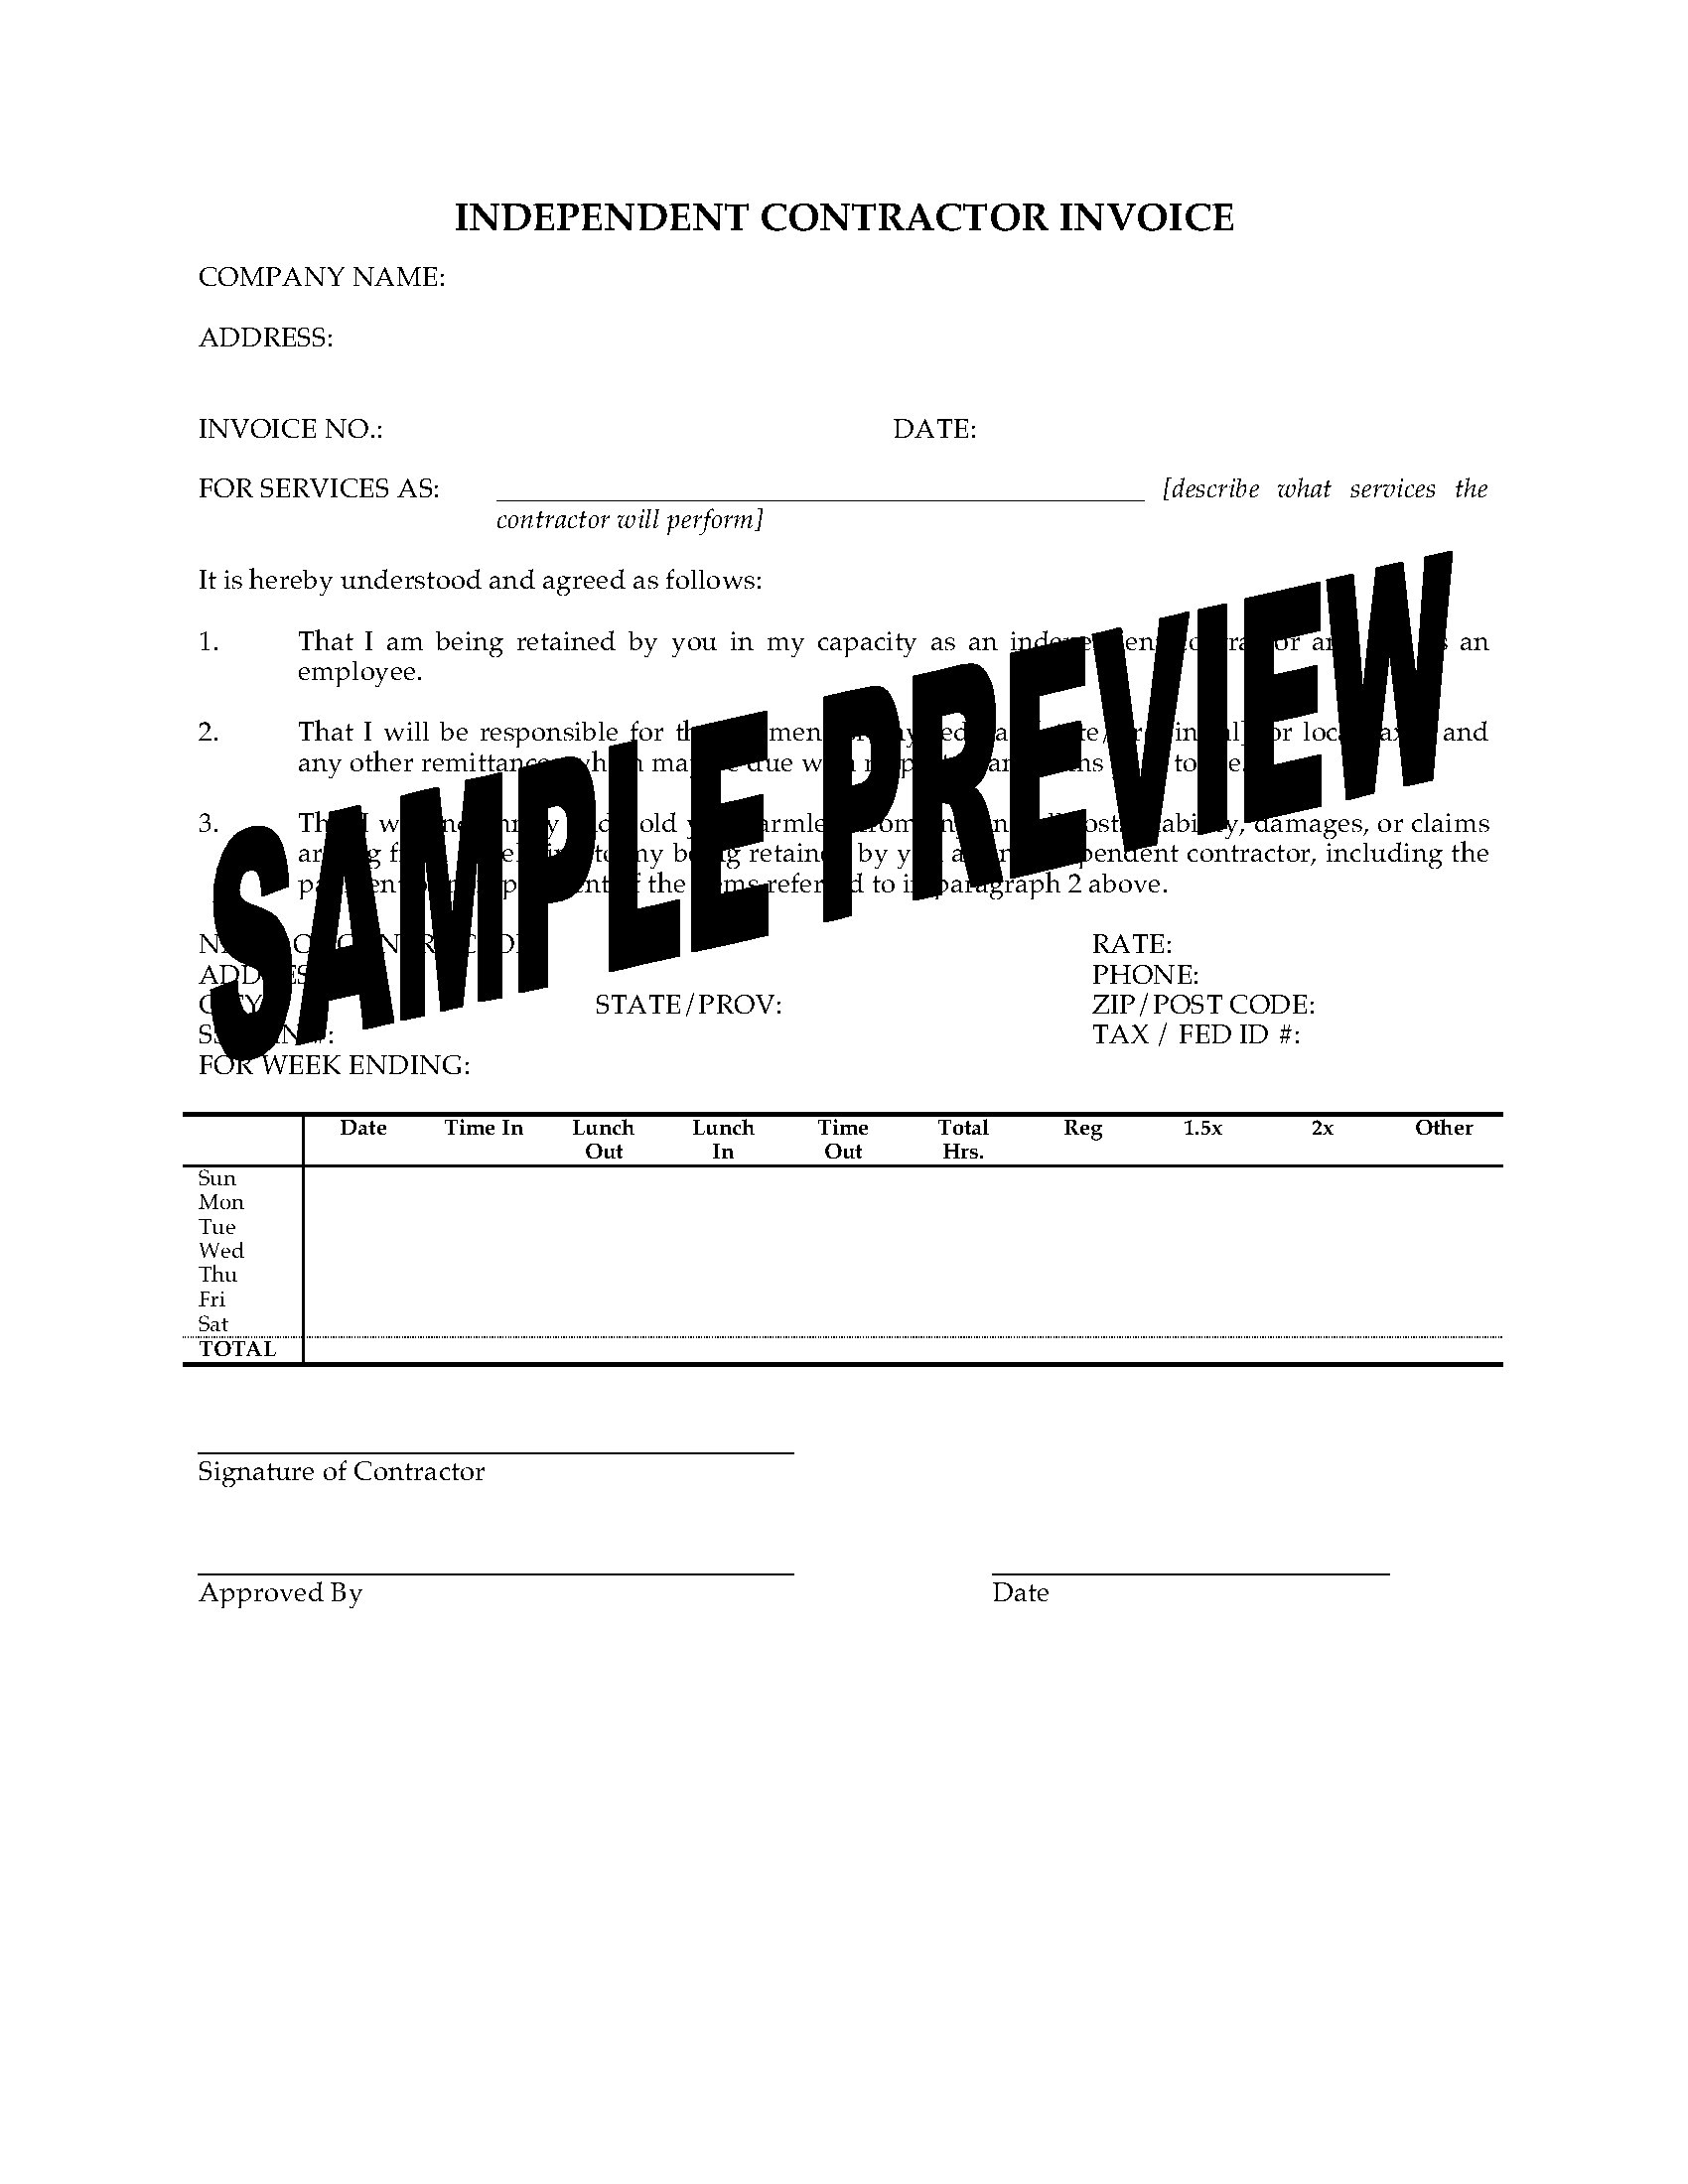 independent contractor invoice form legal forms and business templates. Black Bedroom Furniture Sets. Home Design Ideas